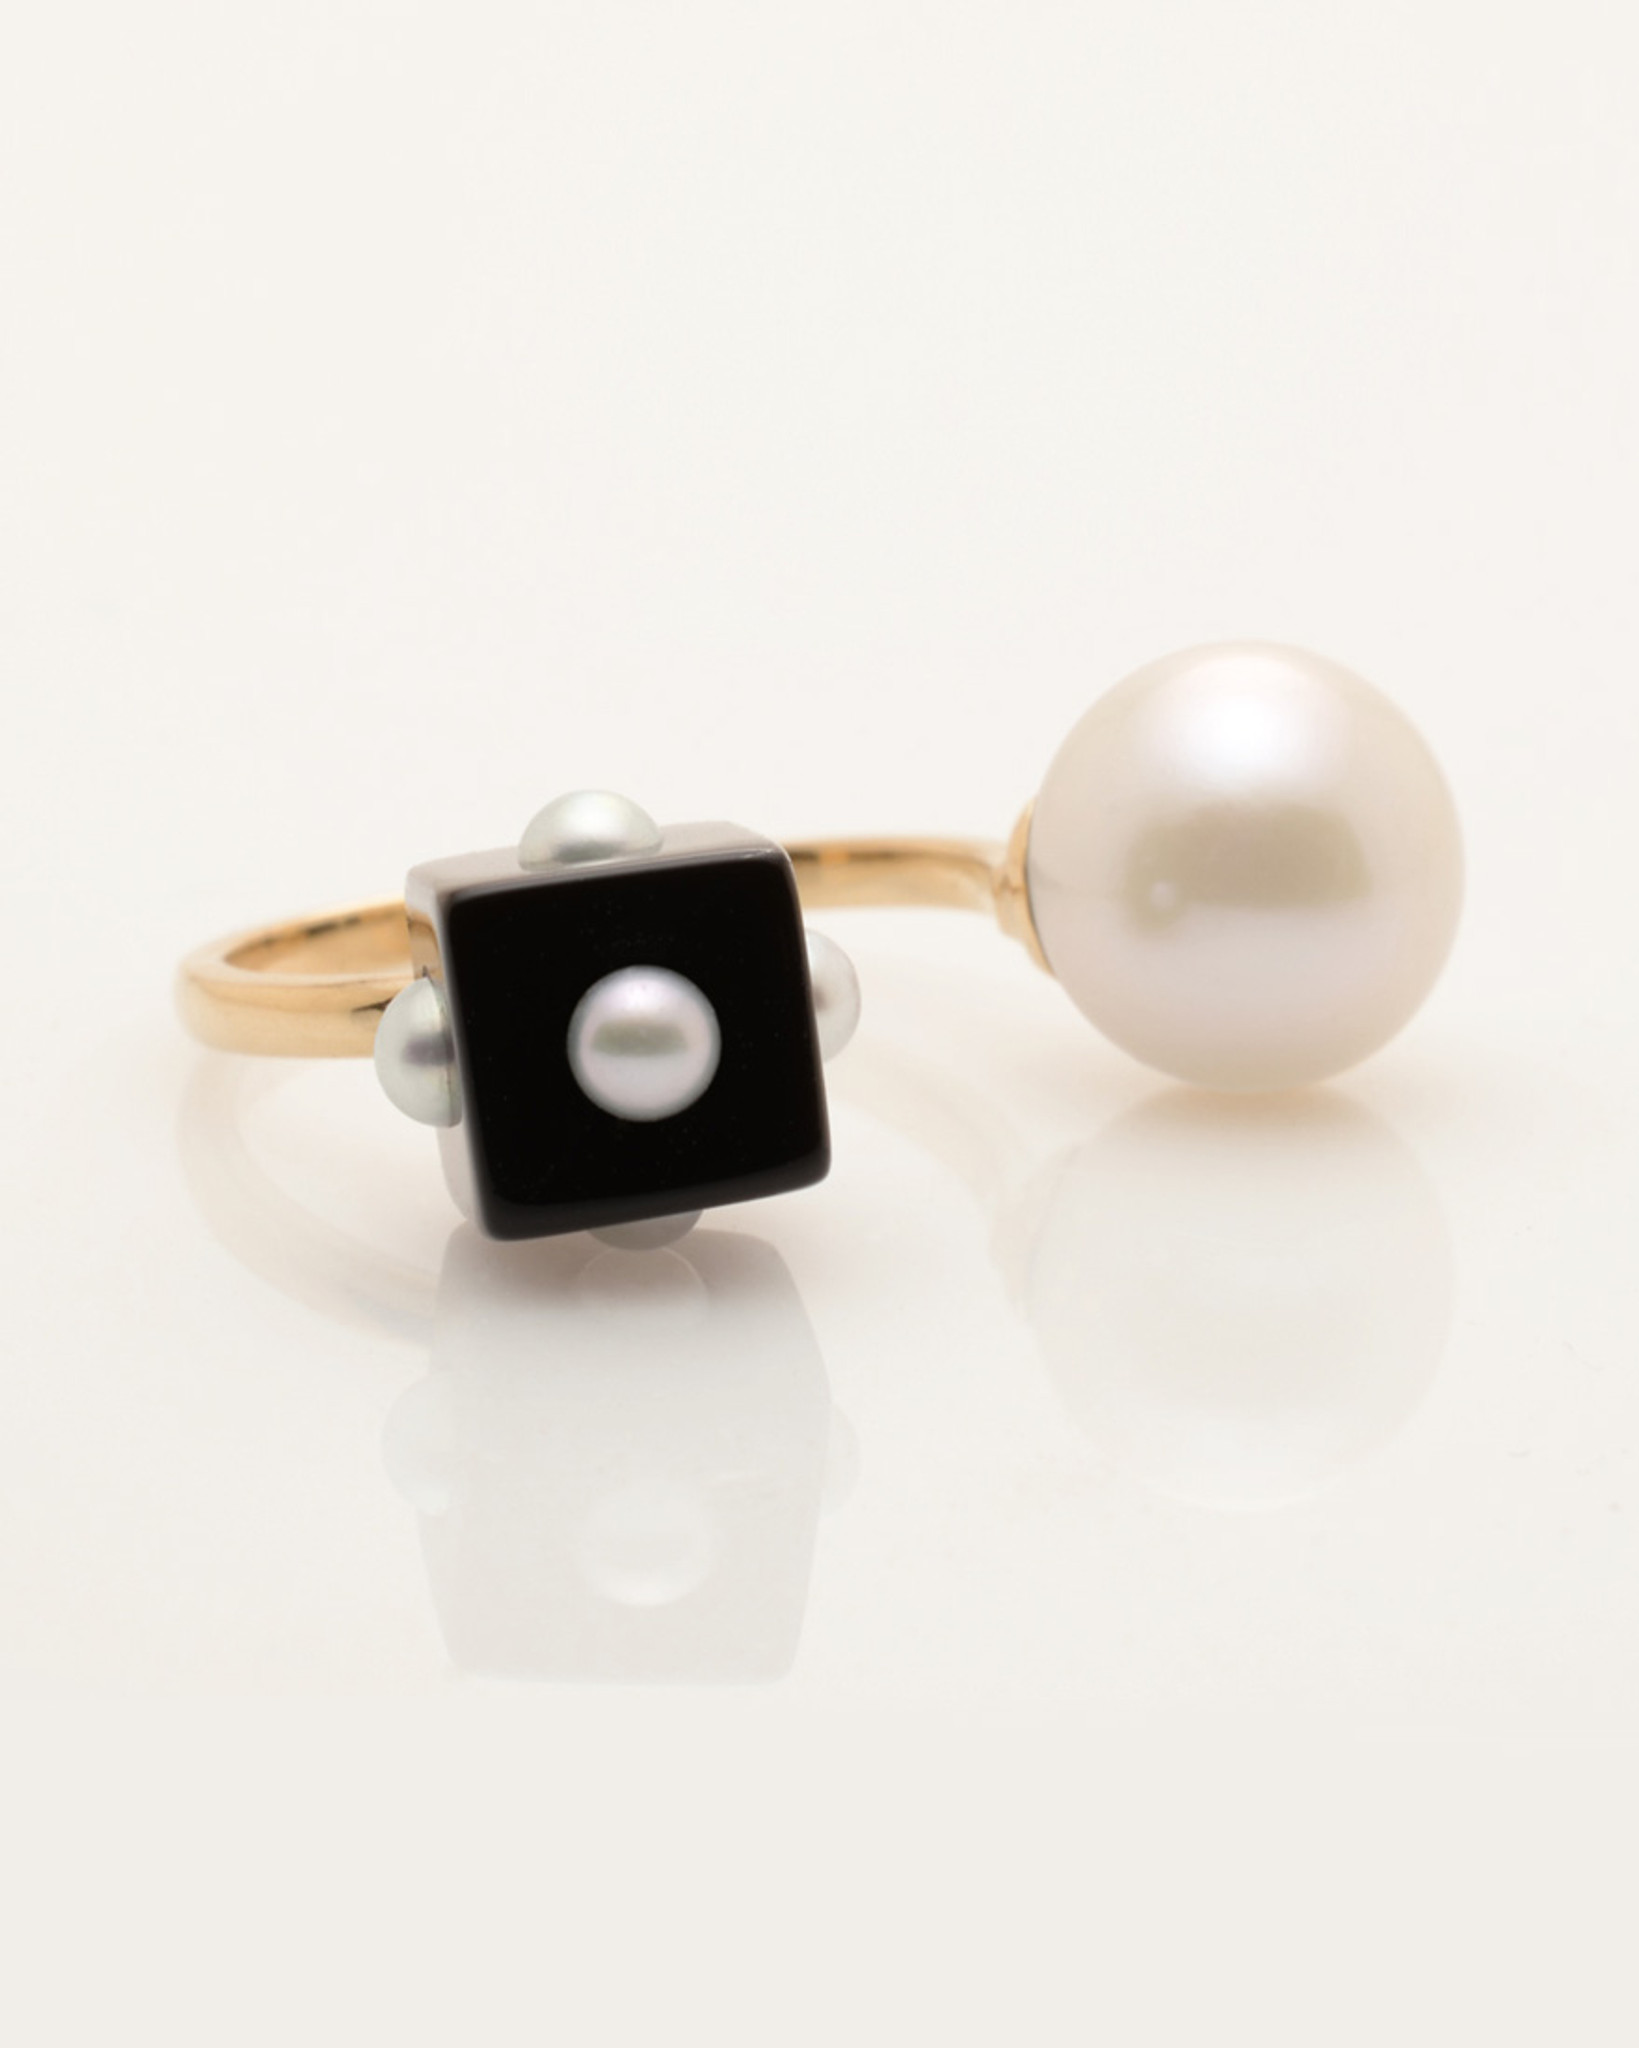 Side view of Mini Pearl Onyx Cube & Pearl Ring with 14k Gold Band by Fine Jewelry Designer Nektar De Stagni (8-9mm. Size 5, 6, 7).